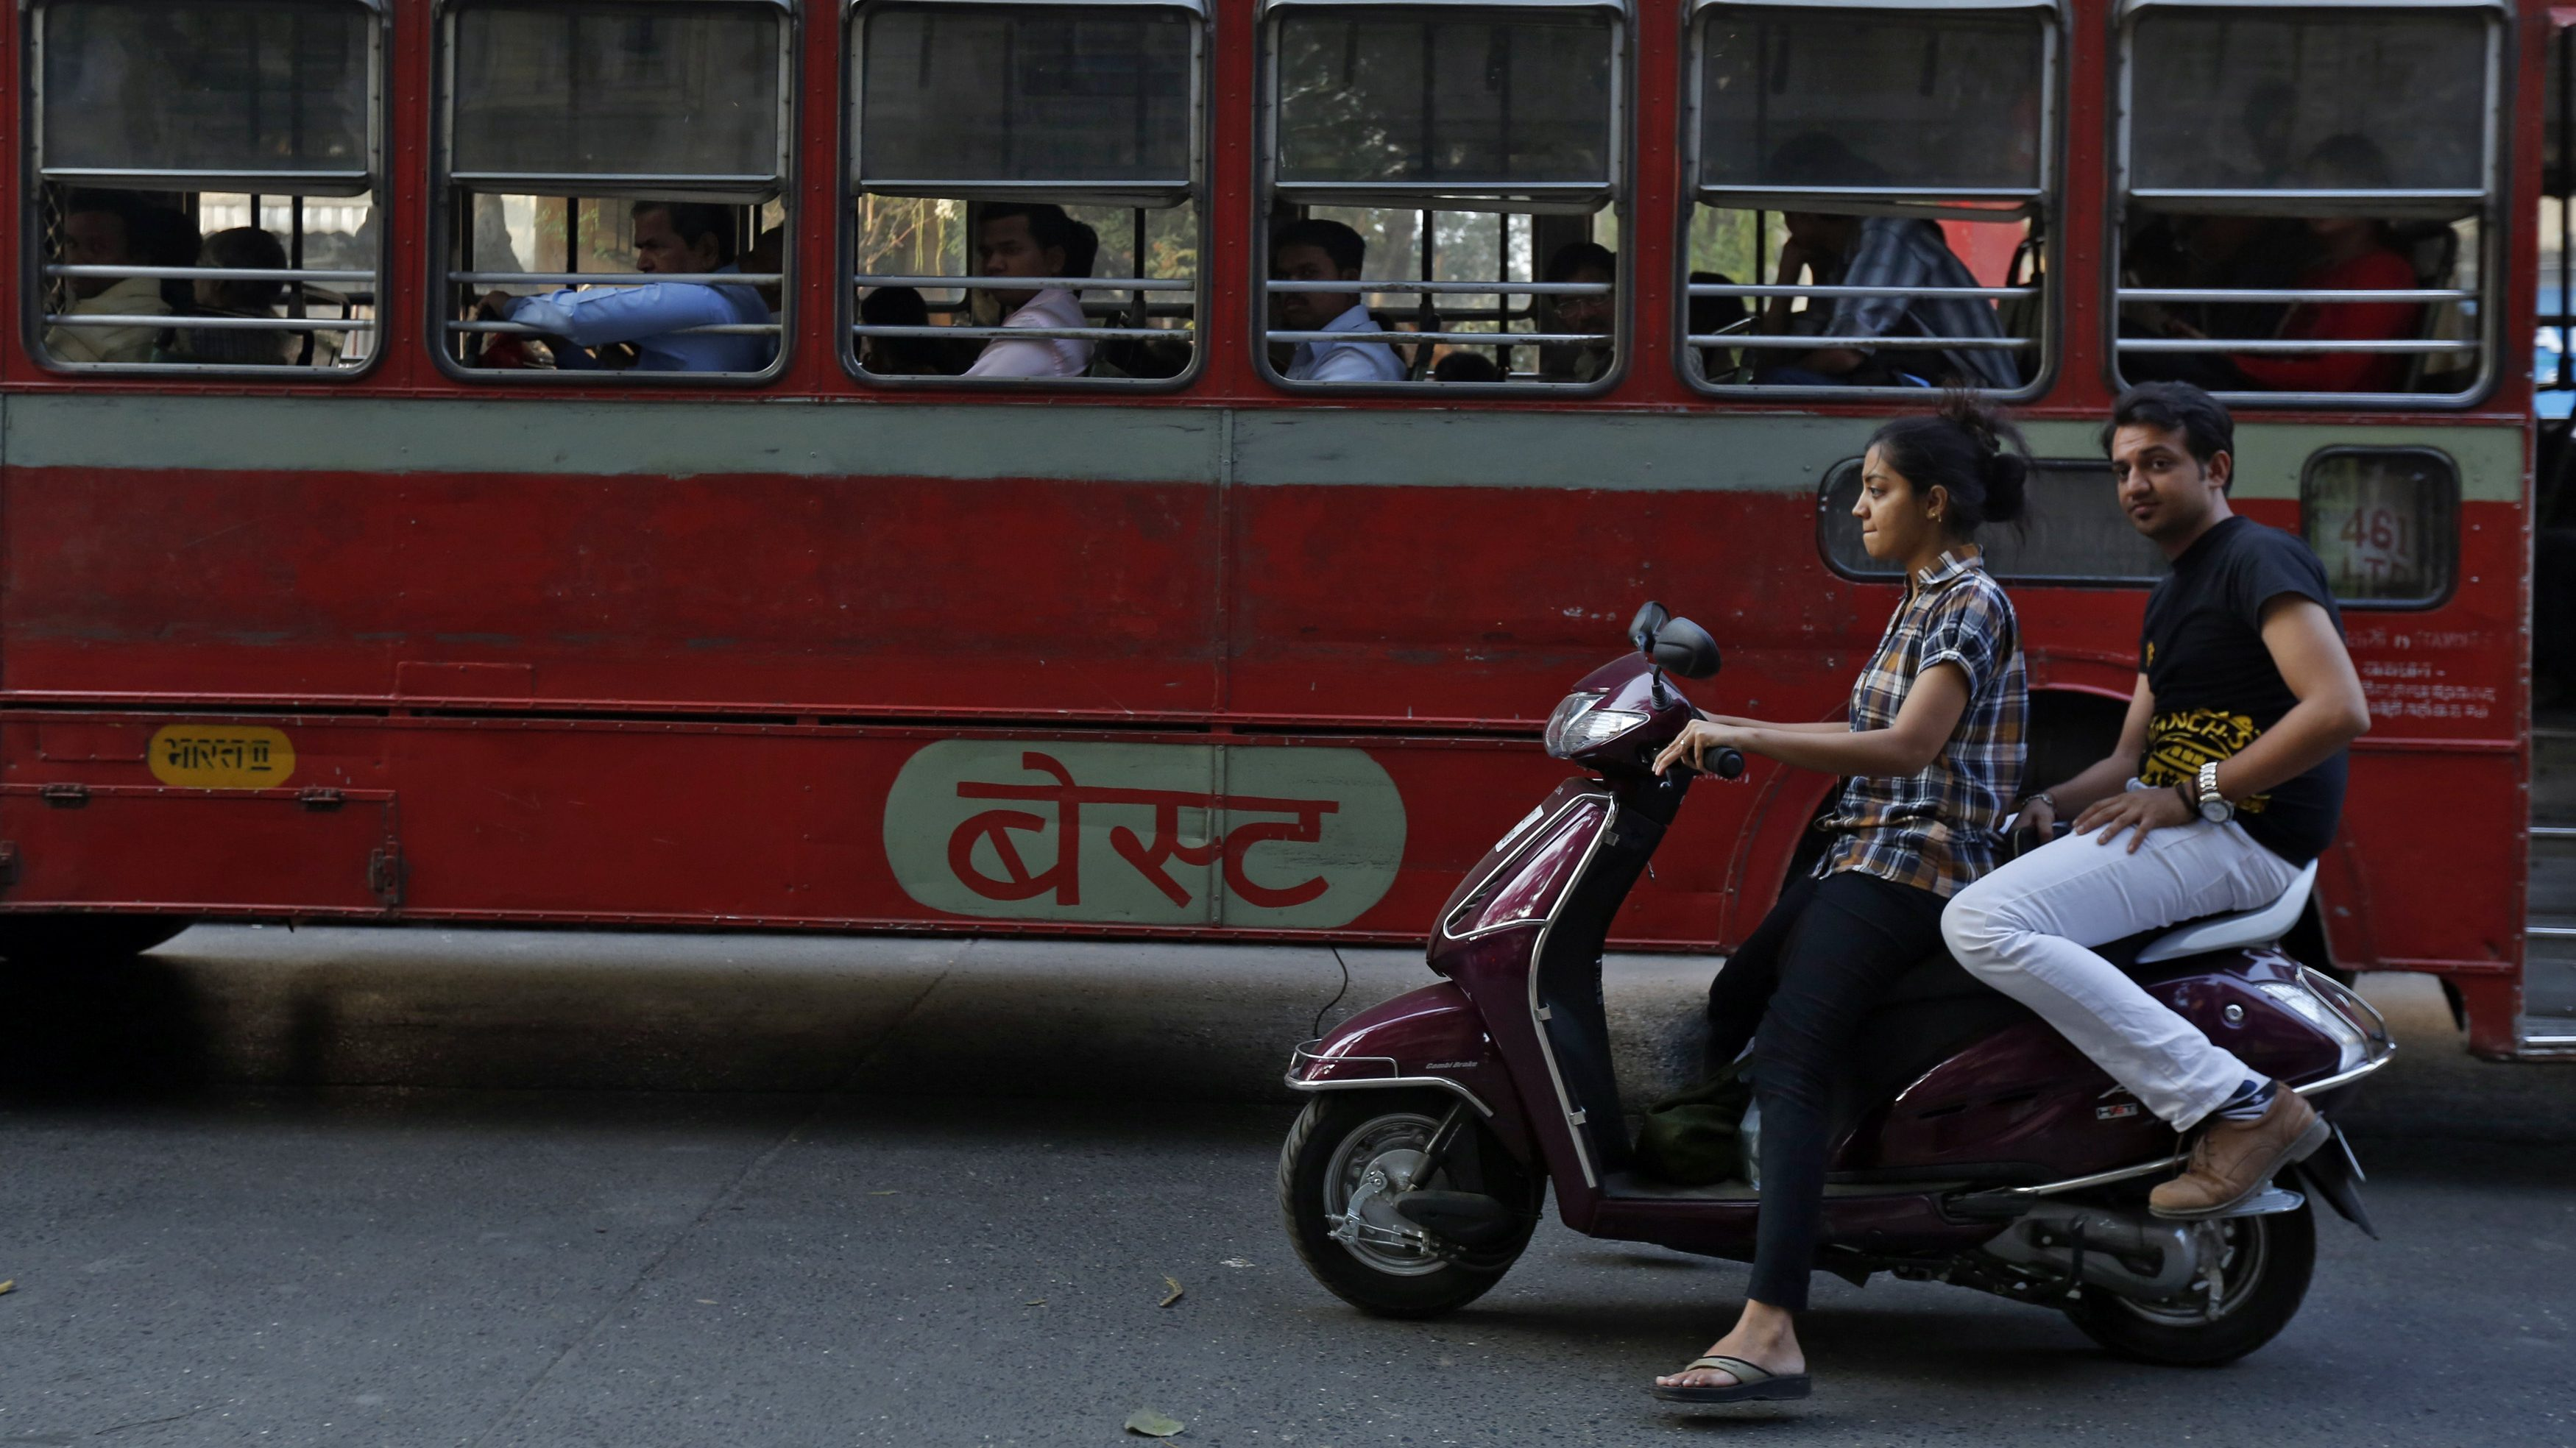 India's Bengaluru is now the scooter sharing capital of the world